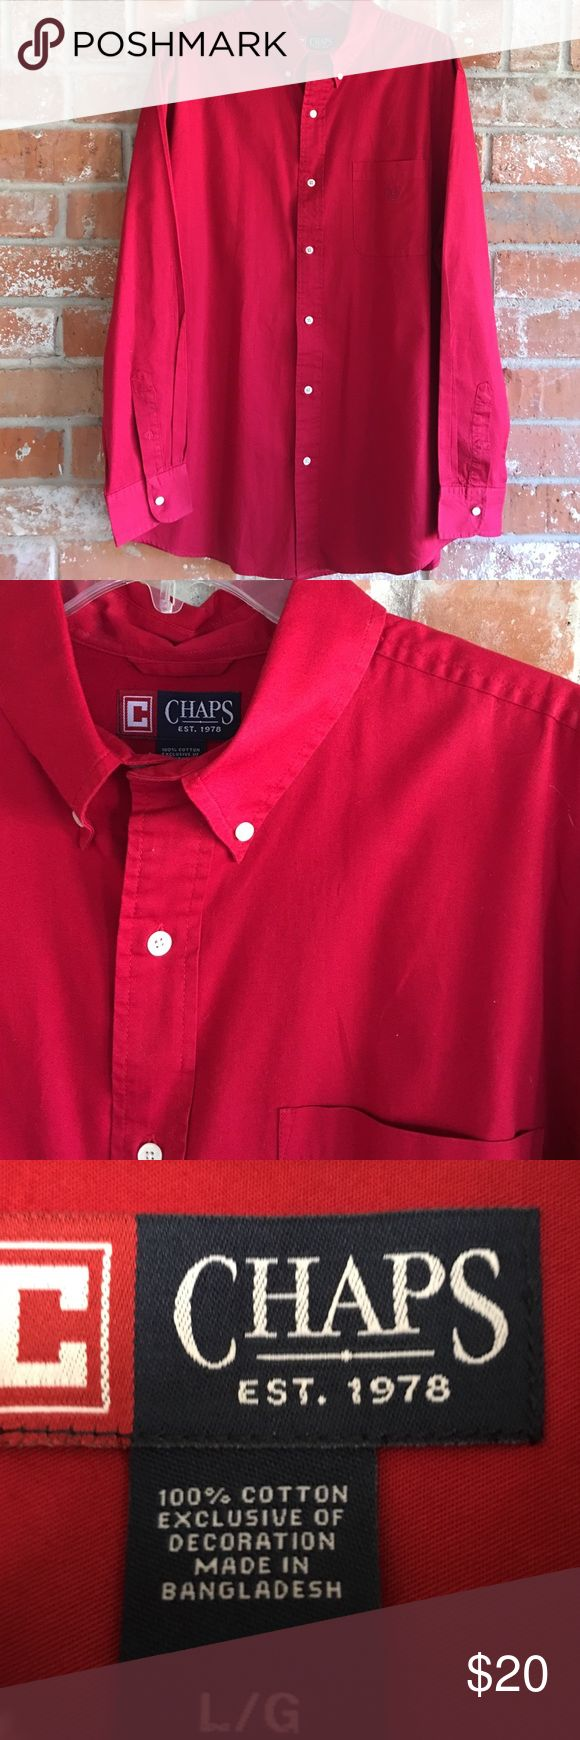 """Men's Red Dress Shirt By Chaps EUC This top is so nice and 100% cotton. My husband only wore it once and sent to cleaners. It measures 24"""" underarm to underarm and is 32"""" long. Great for the holidays!! ❤️❤️❤️ Chaps Shirts Dress Shirts"""